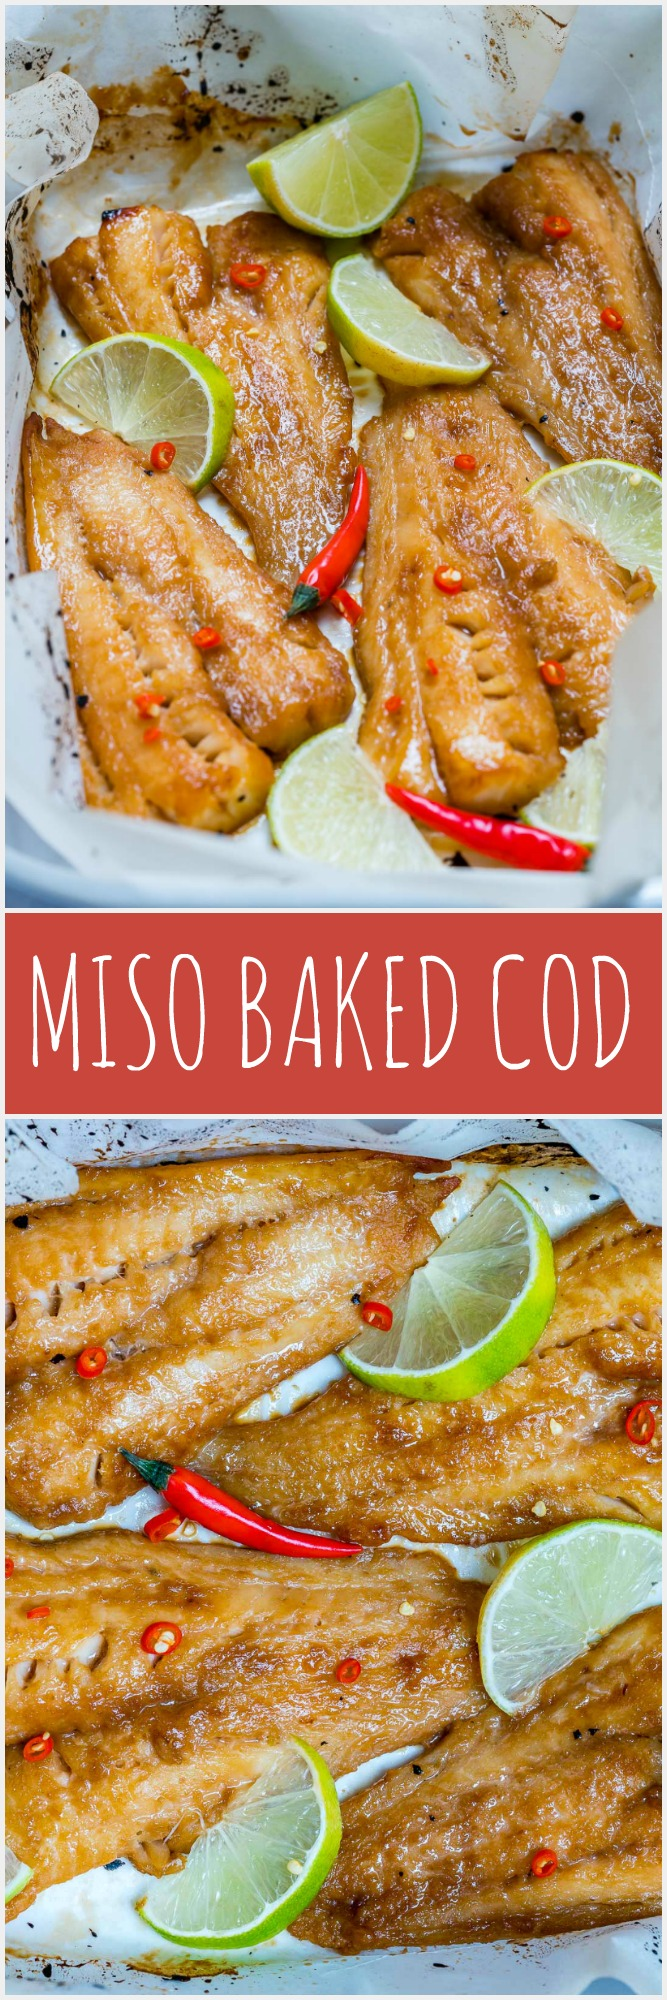 Dinner Favorite Spicy Miso Baked Cod